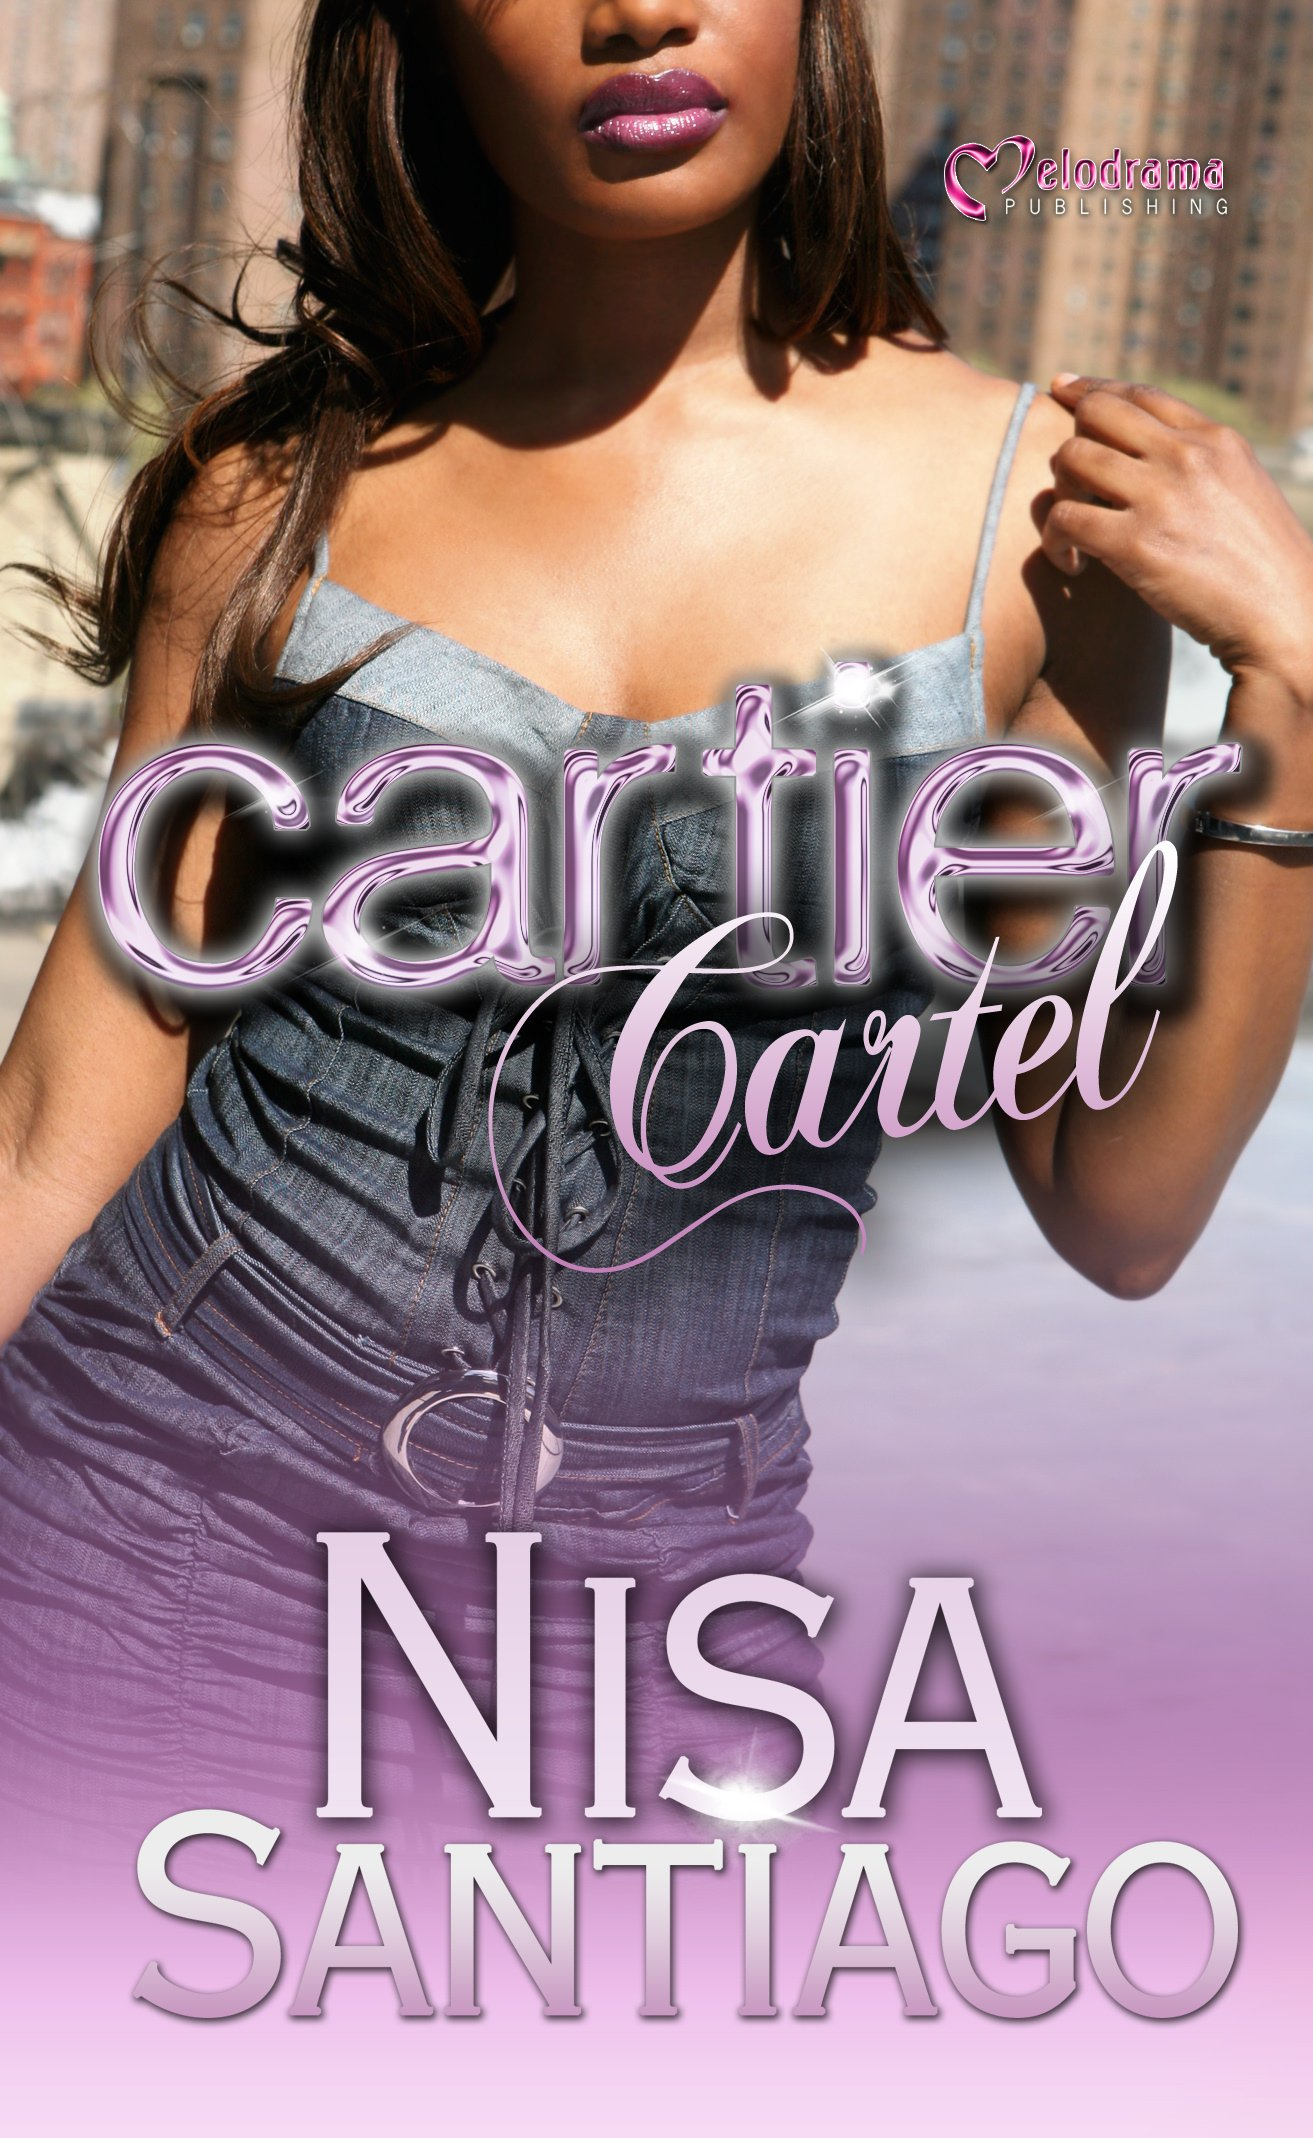 Amazon.com: Cartier Cartel (9781934157343): Nisa Santiago: Books